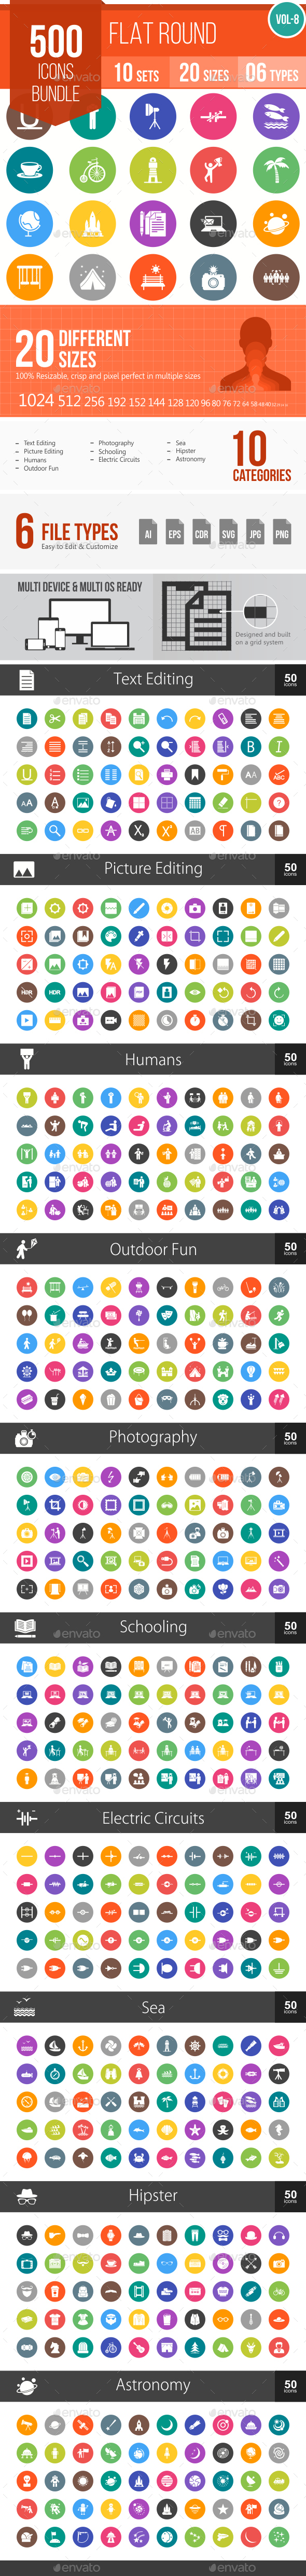 500 Vector Colorful Round Flat Icons Bundle (Vol-8) - Icons